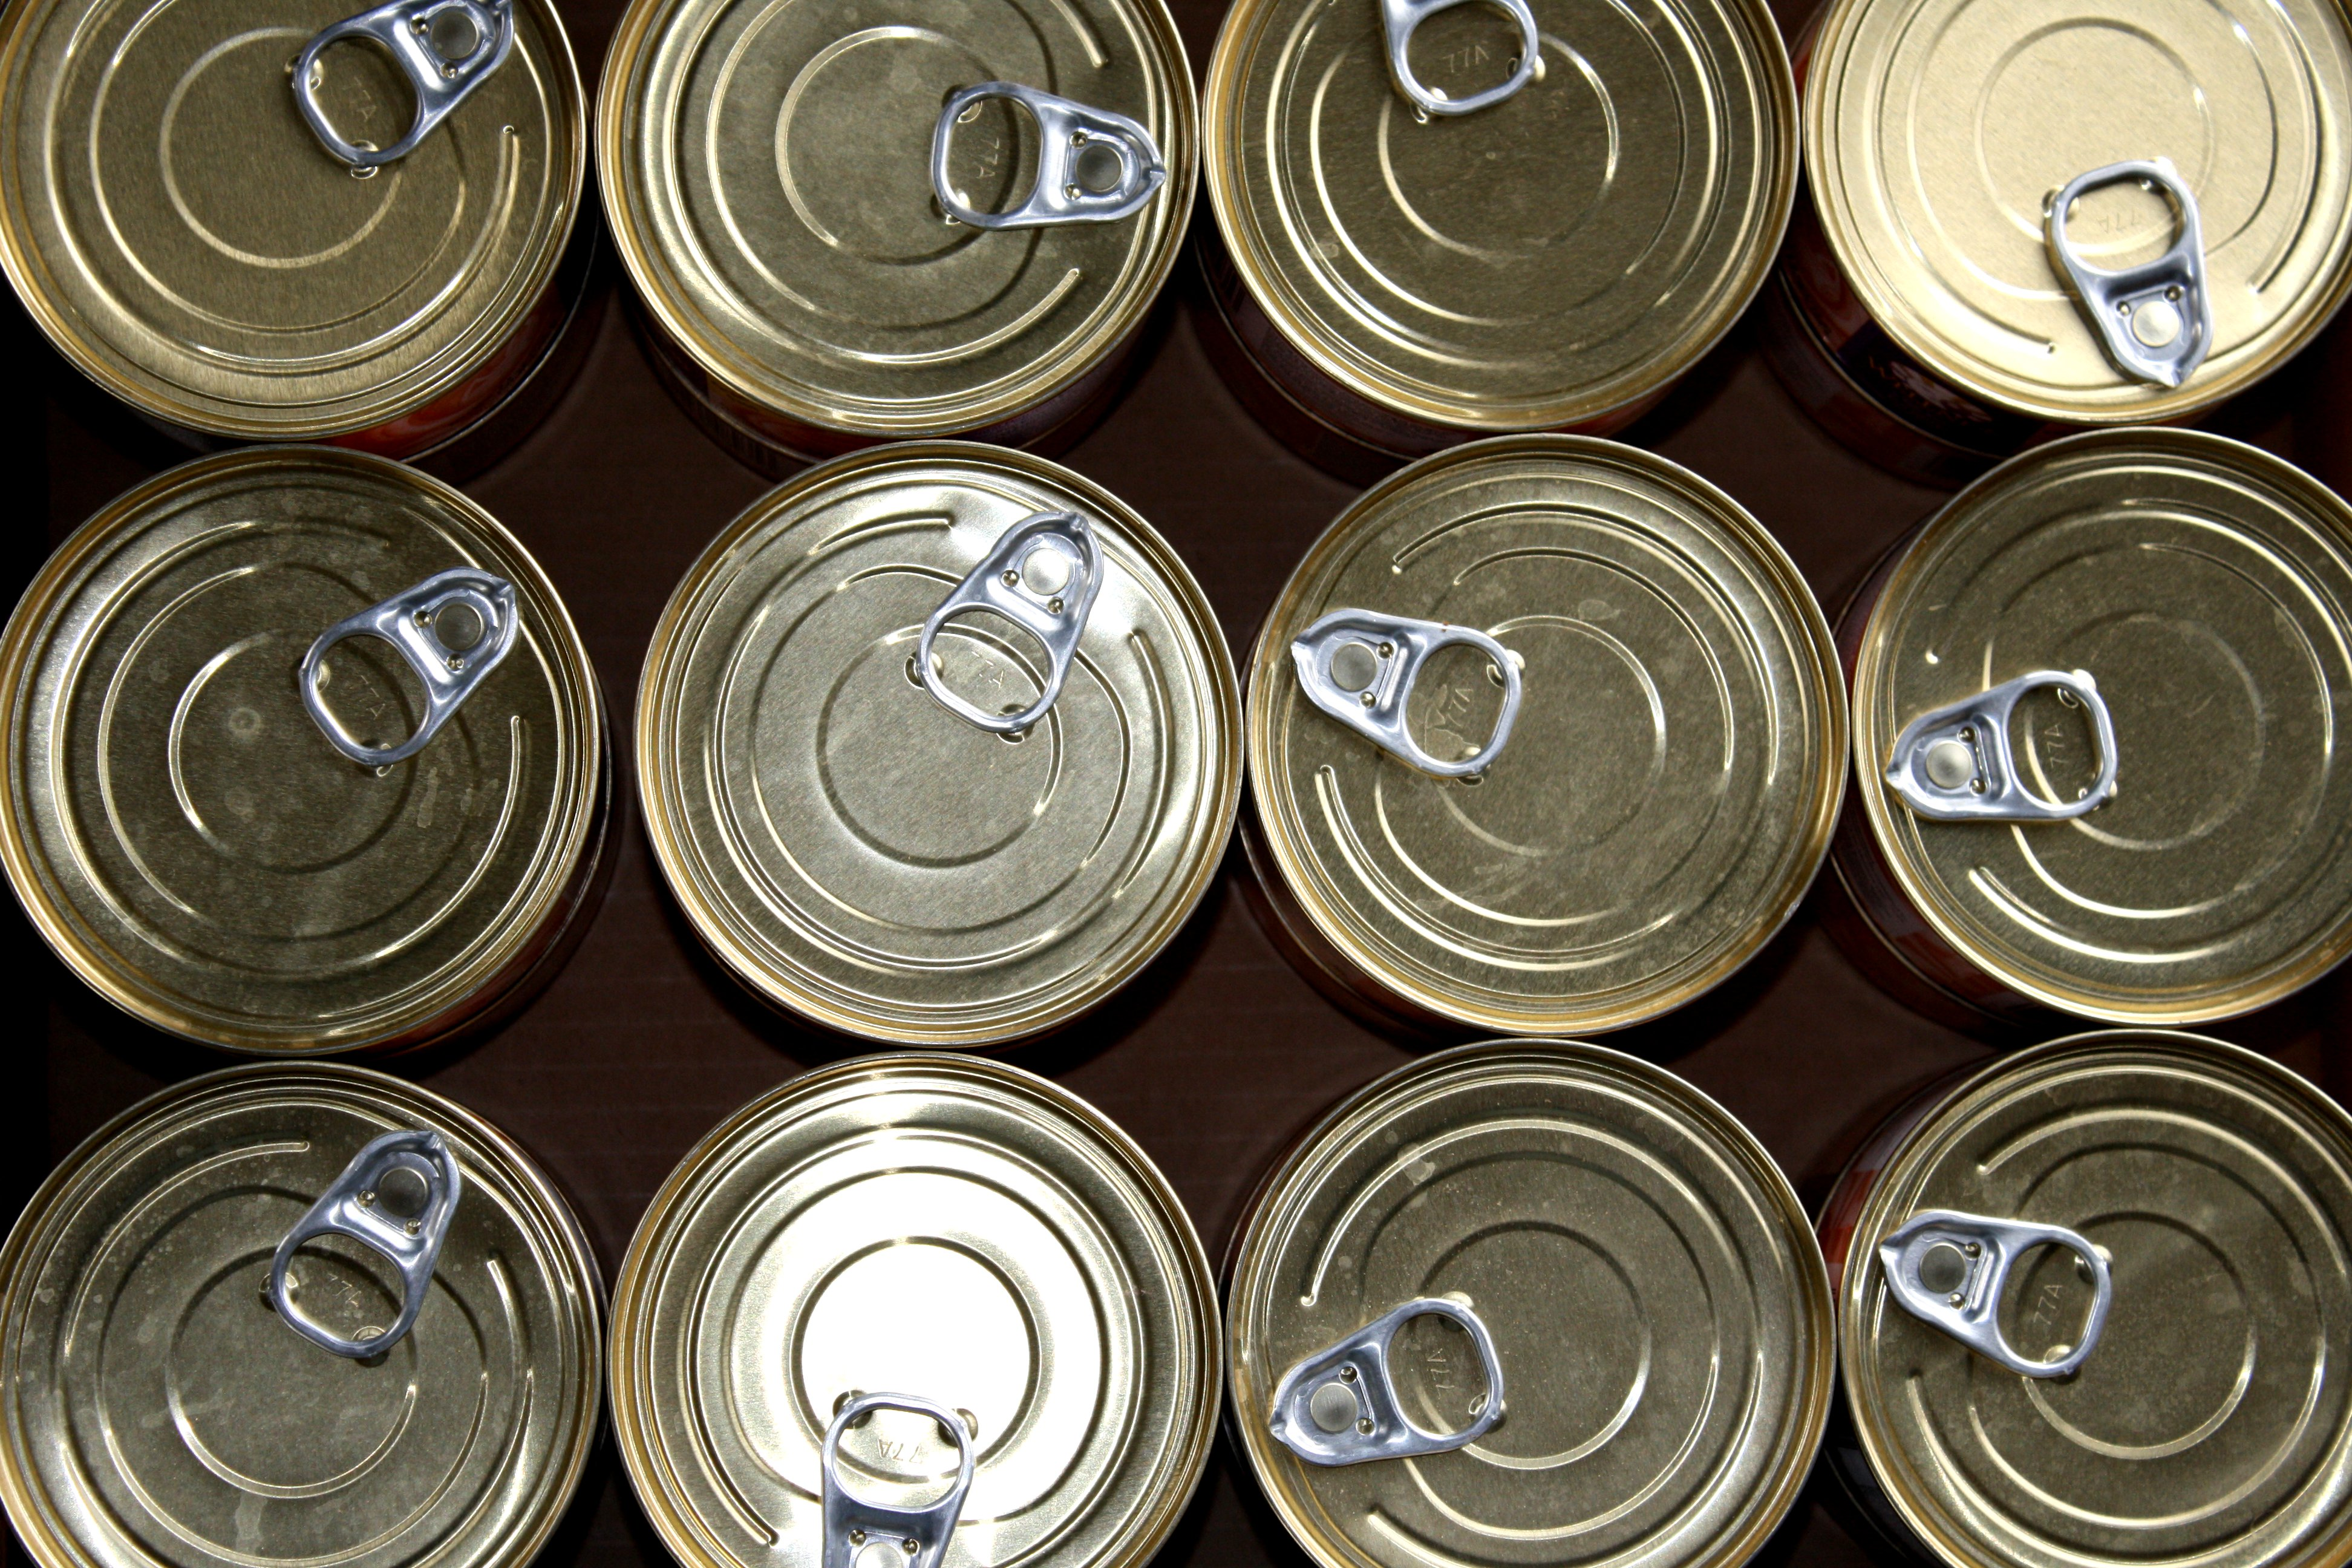 Pull Top Cat Food Cans Closeup Texture Picture Free